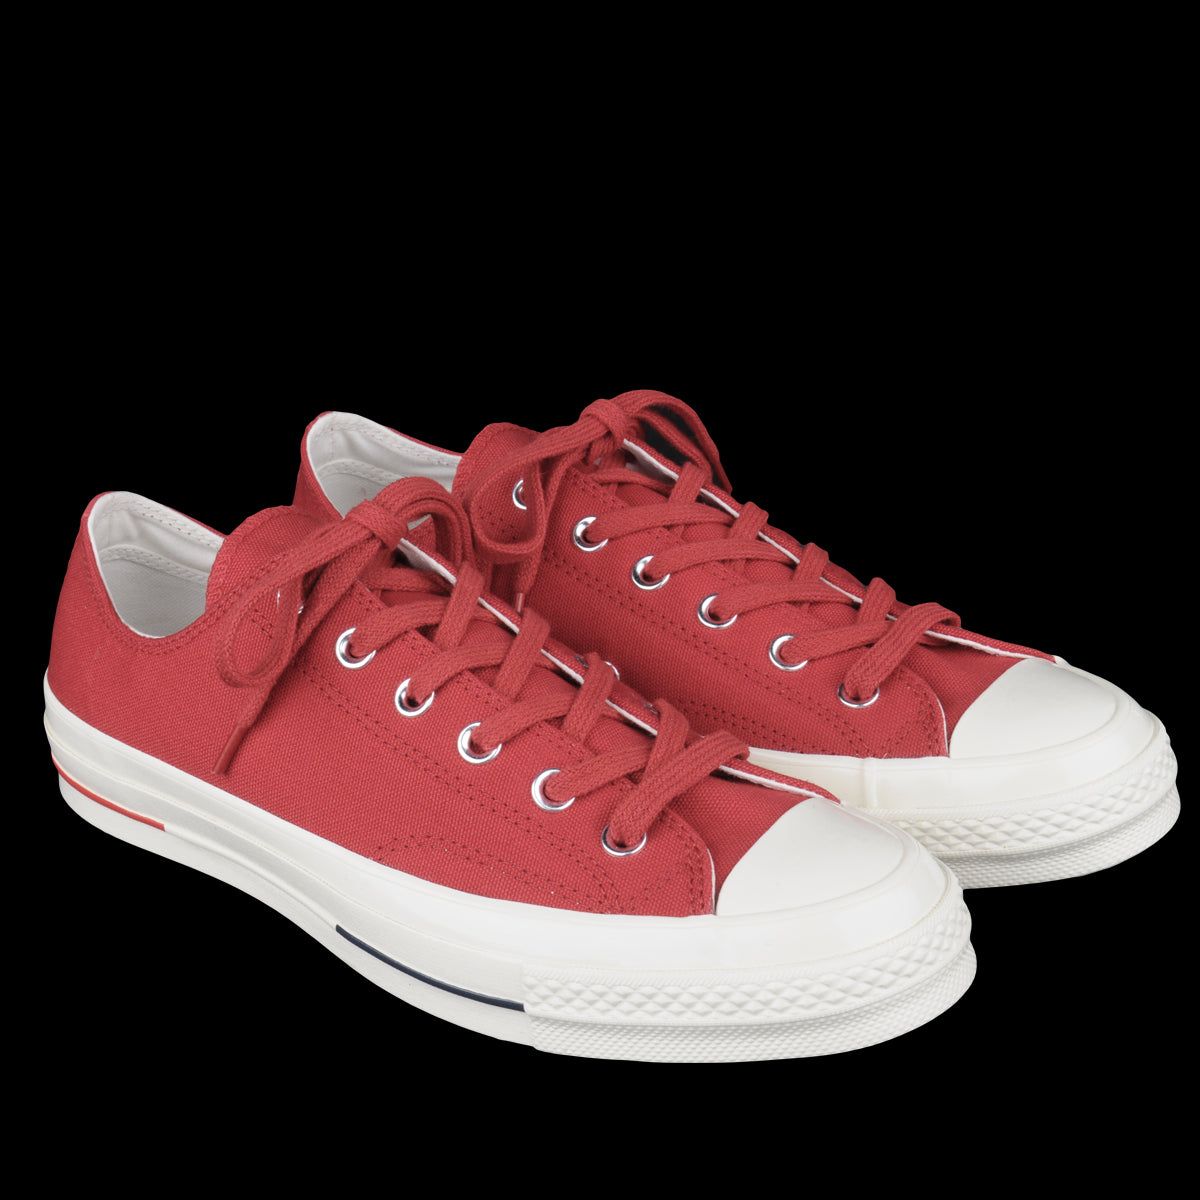 c4af556ec83 Converse - Chuck Taylor All Star 70 Ox in Gym Red - UNIONMADE